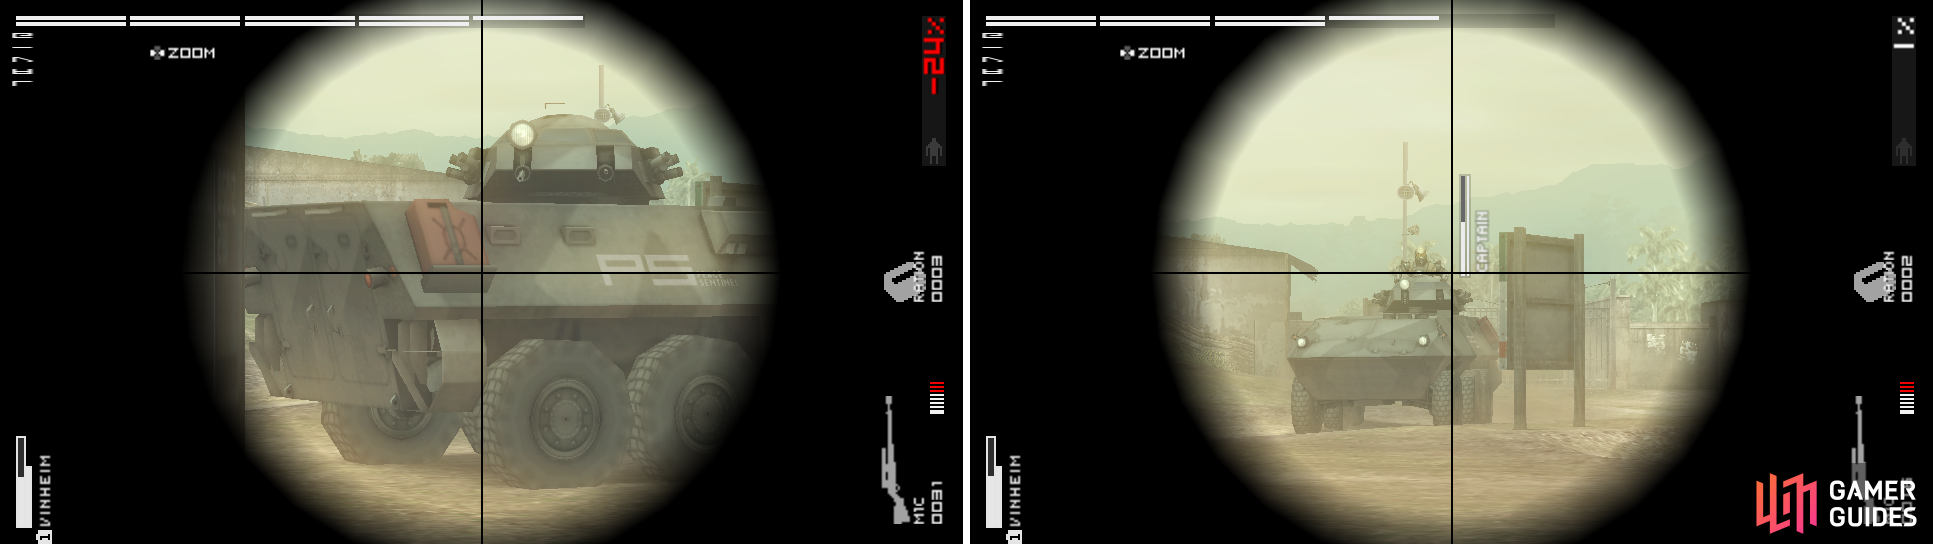 If you decide to go for the tank, the fuel containers are its weakness (left picture). The commander comes out of the vehicle waiting for you to headshoot him (right picture).